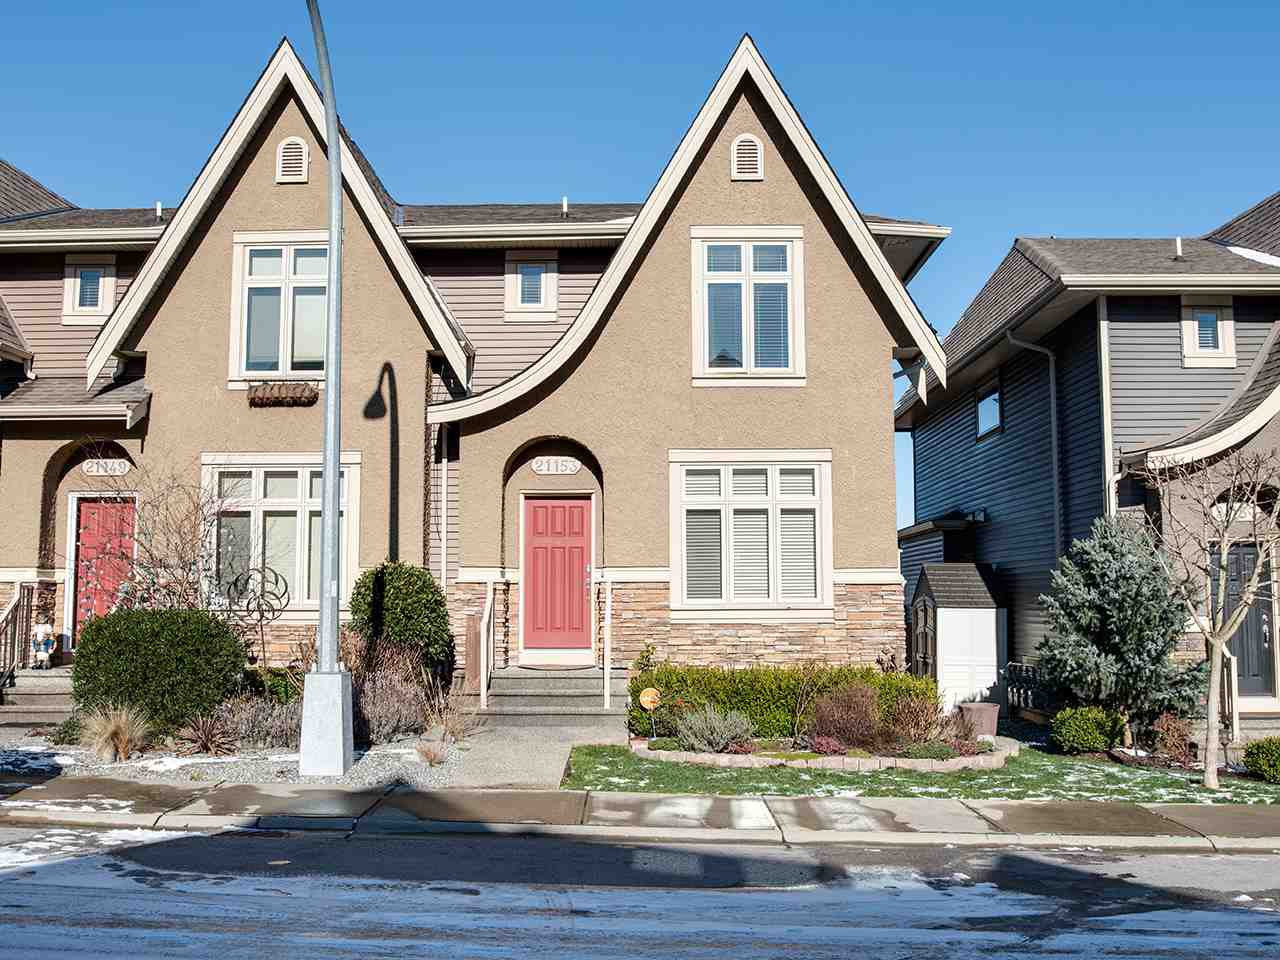 """Main Photo: 21153 77B Avenue in Langley: Willoughby Heights Condo for sale in """"Yorkson Shaunessy Mews"""" : MLS®# R2338148"""